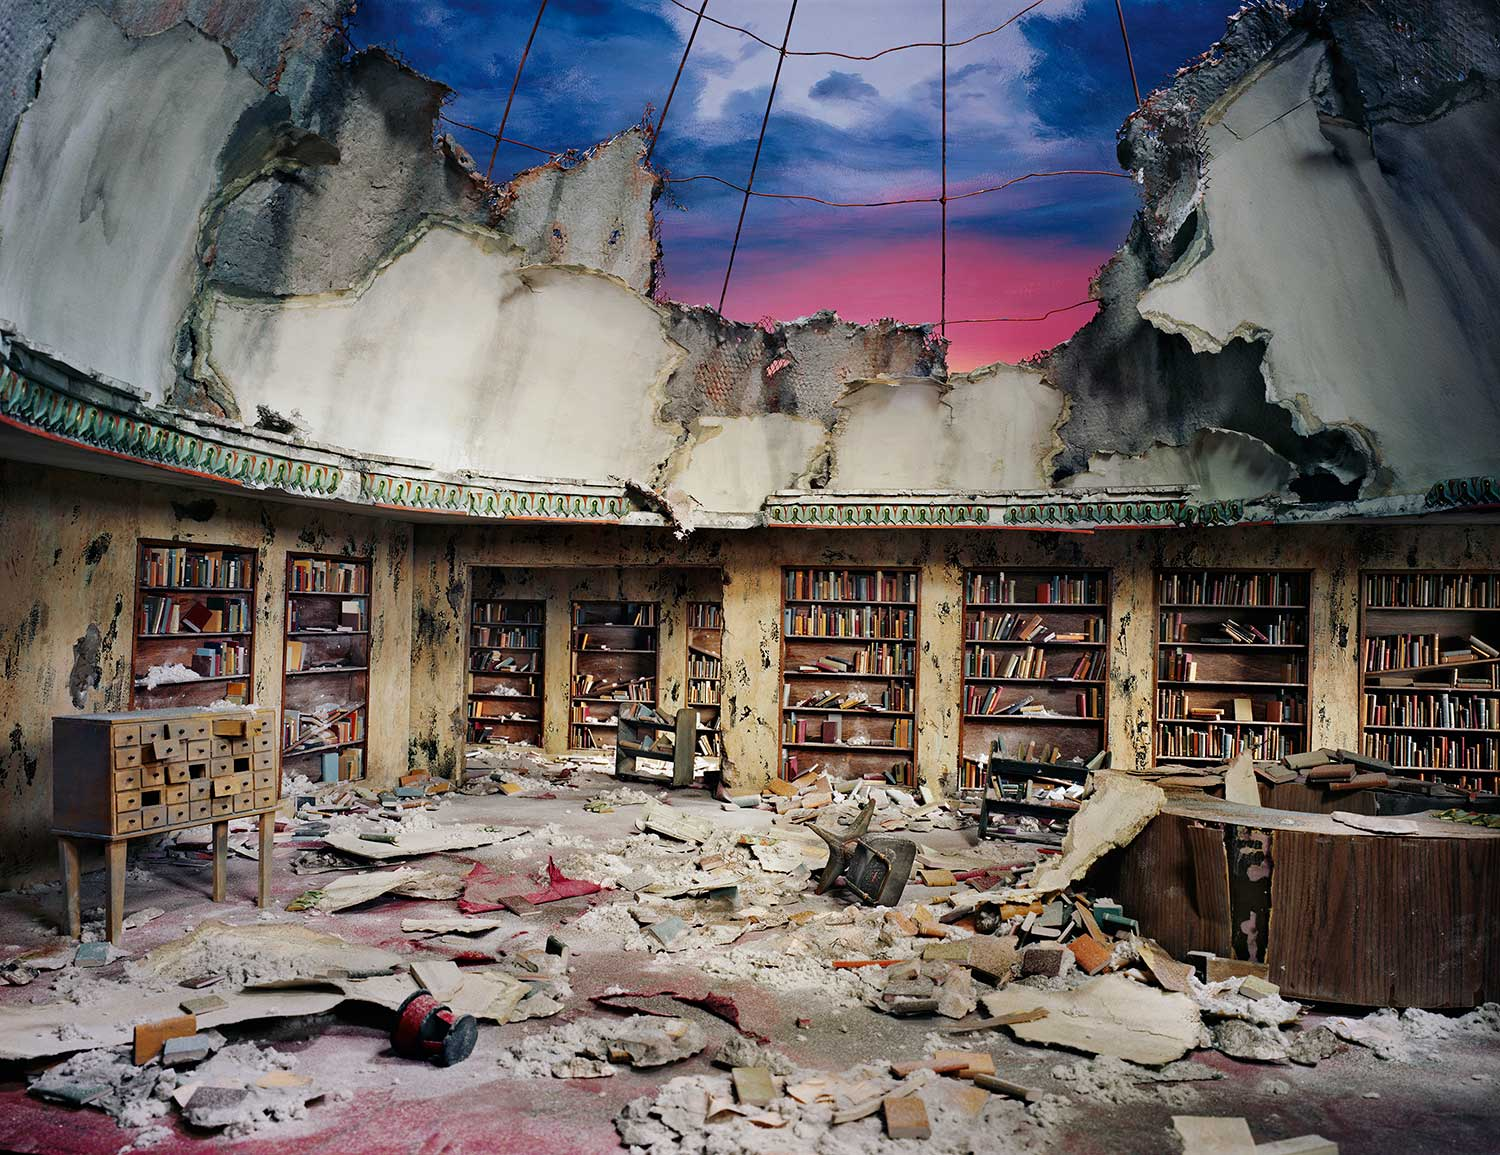 Extraordinary Miniature Apocalyptic Interior Sets by Nix + Gerber | Yellowtrace